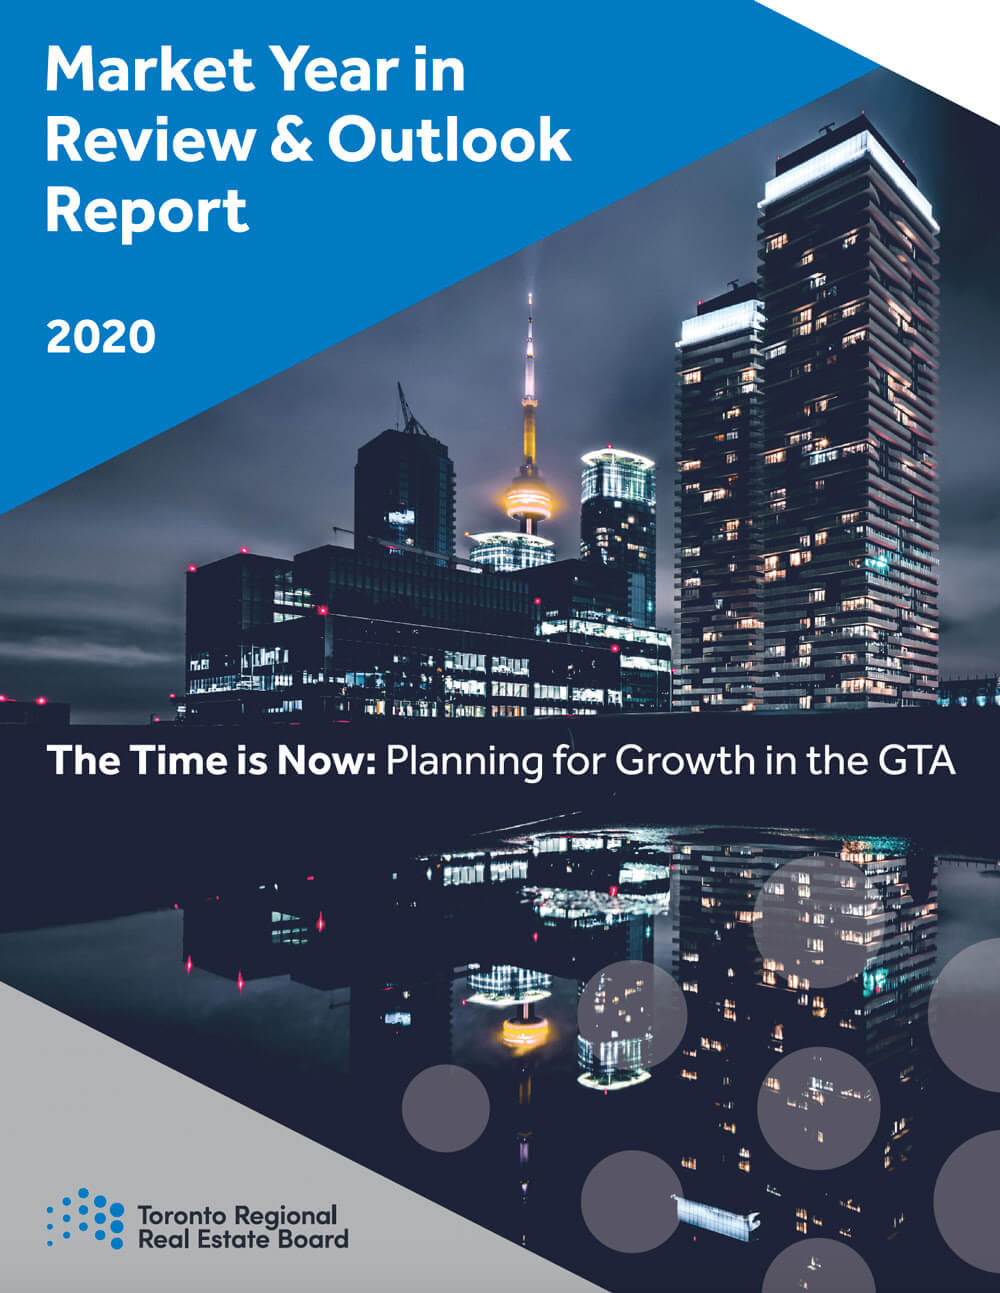 NOW AVAILABLE: TREB's 2020 Market Year in Review & Outlook Report